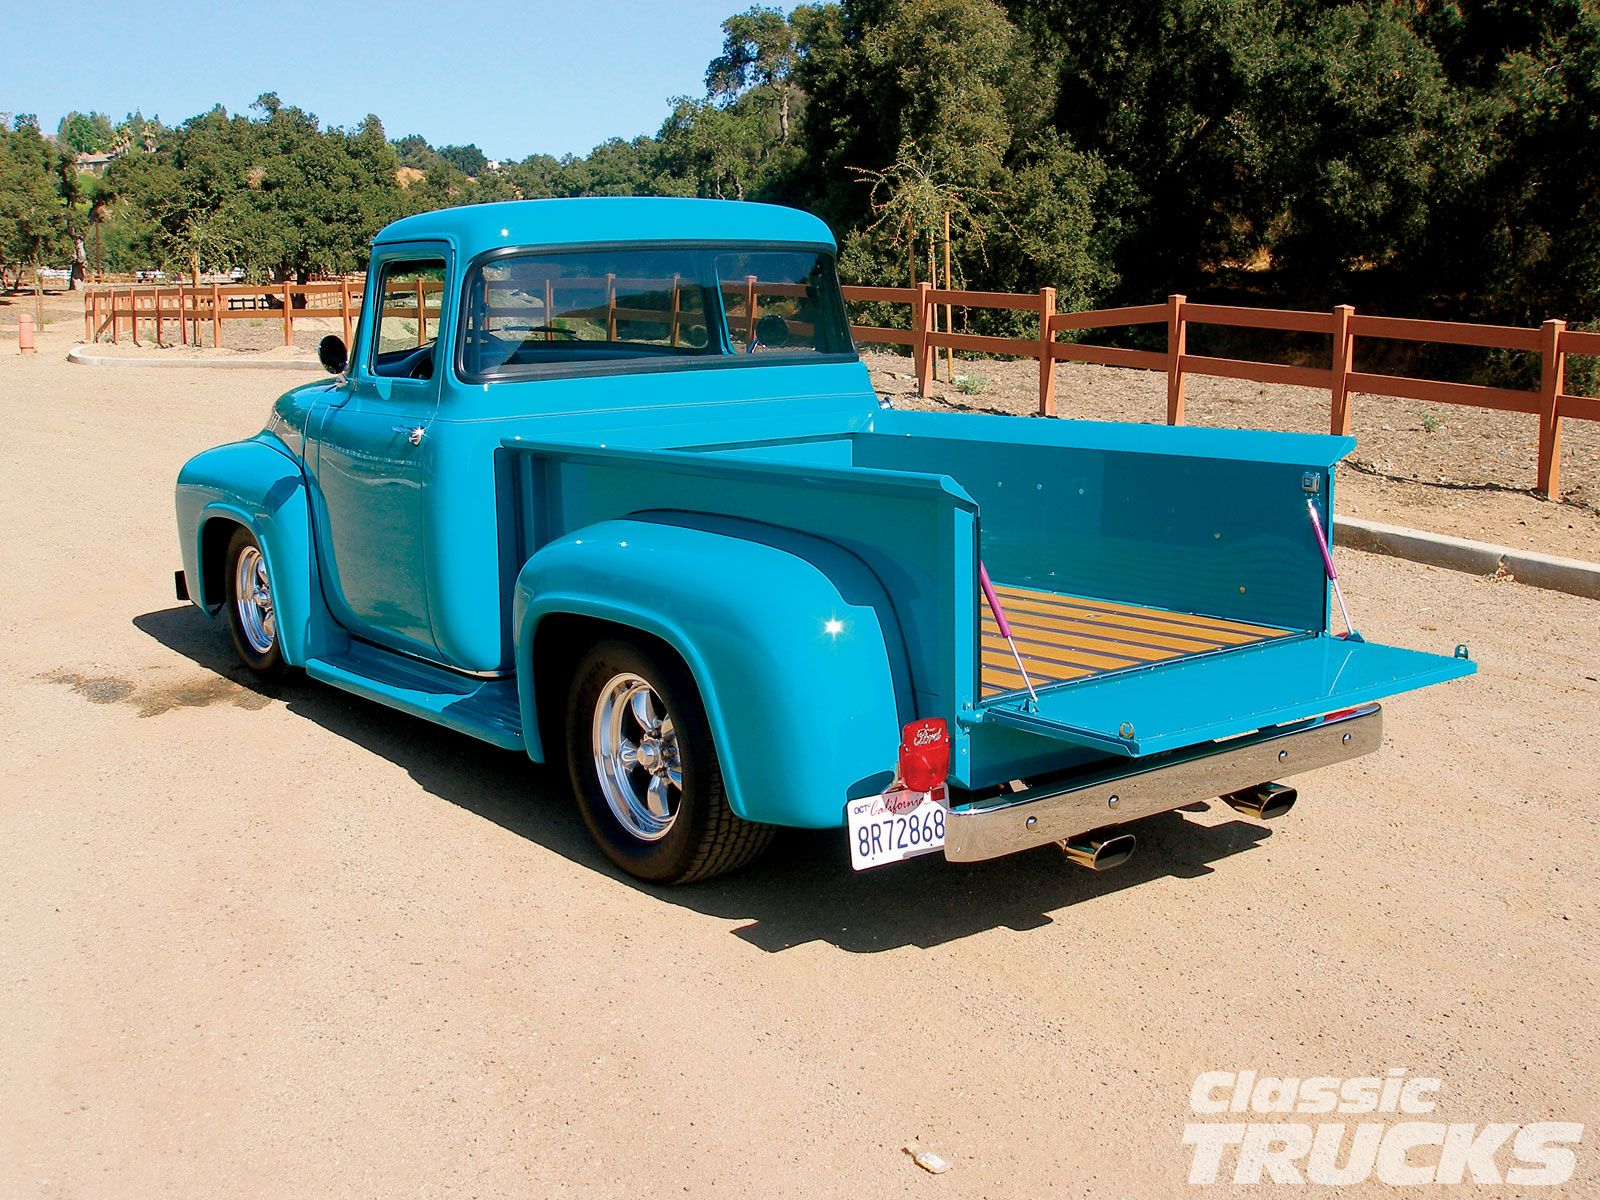 56 Ford F100. That's a striking color. | Classic trucks ...1956 Ford F100 Lifted